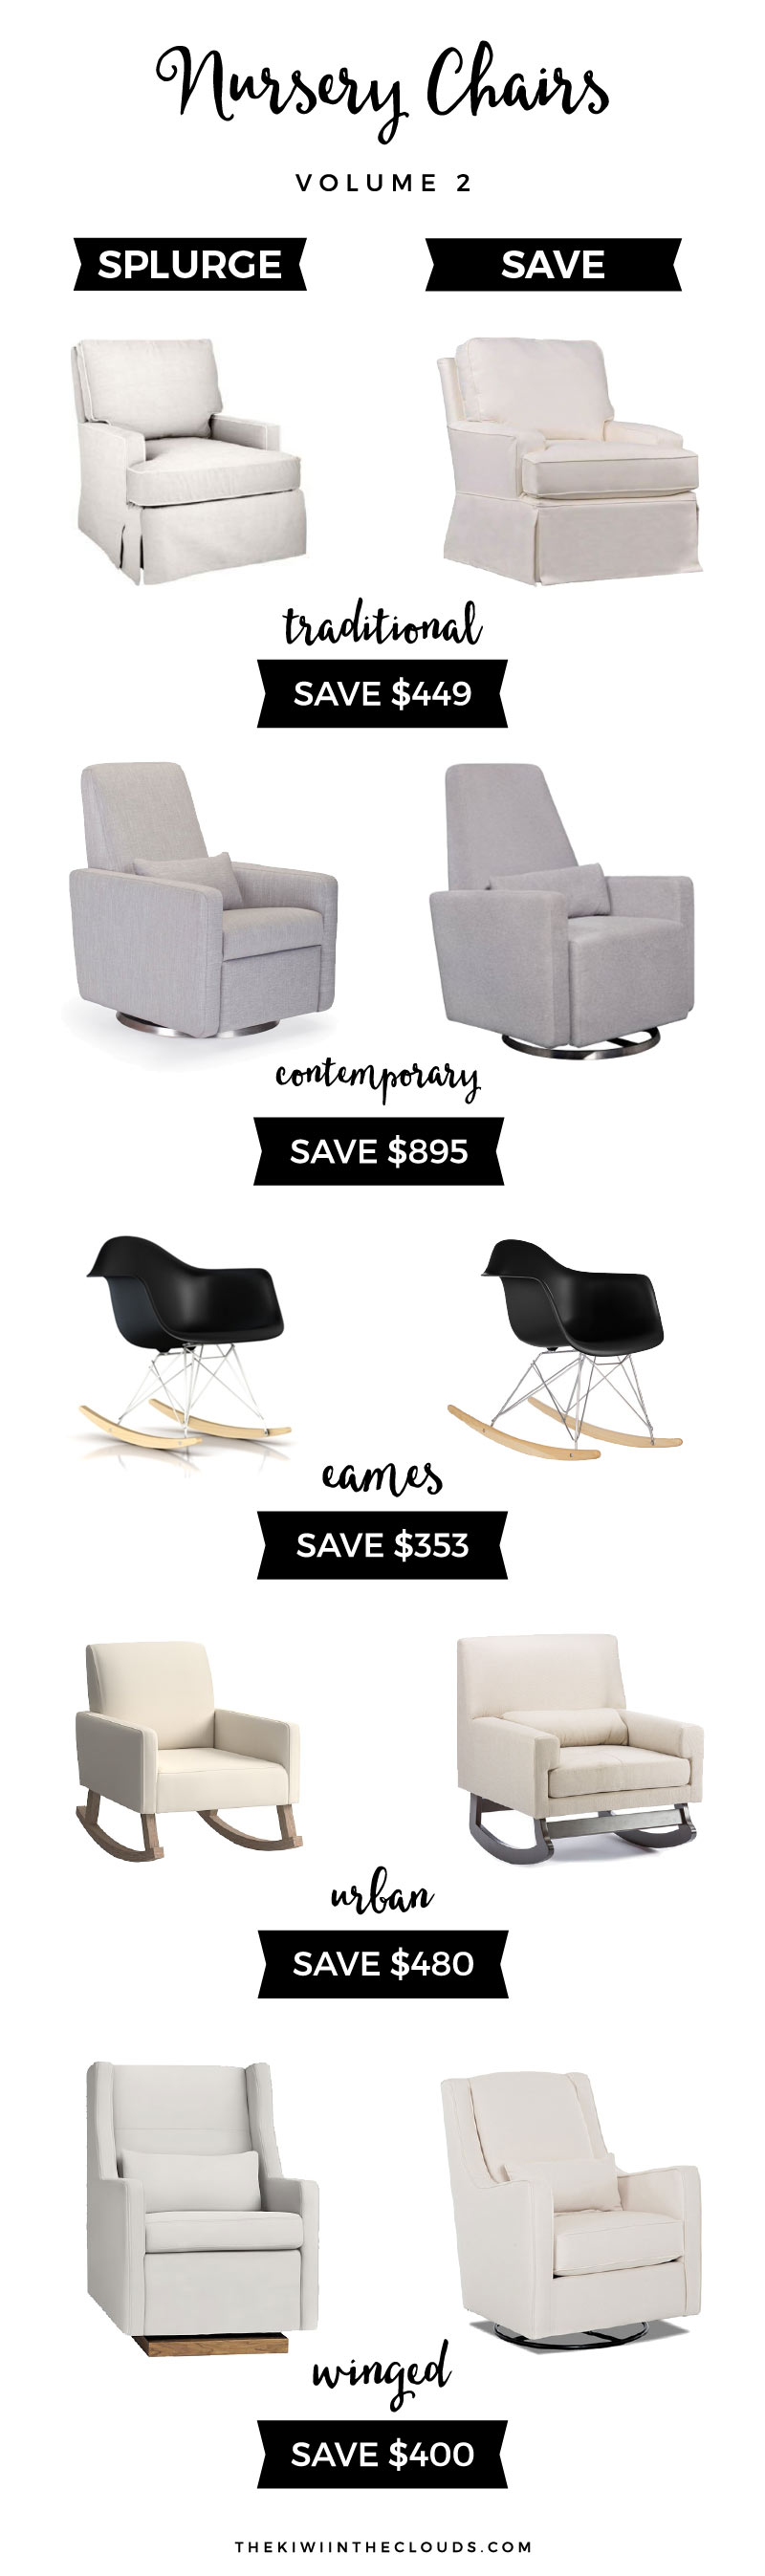 Best Nursery Chairs For Every Budget | Baby Gear | Registry